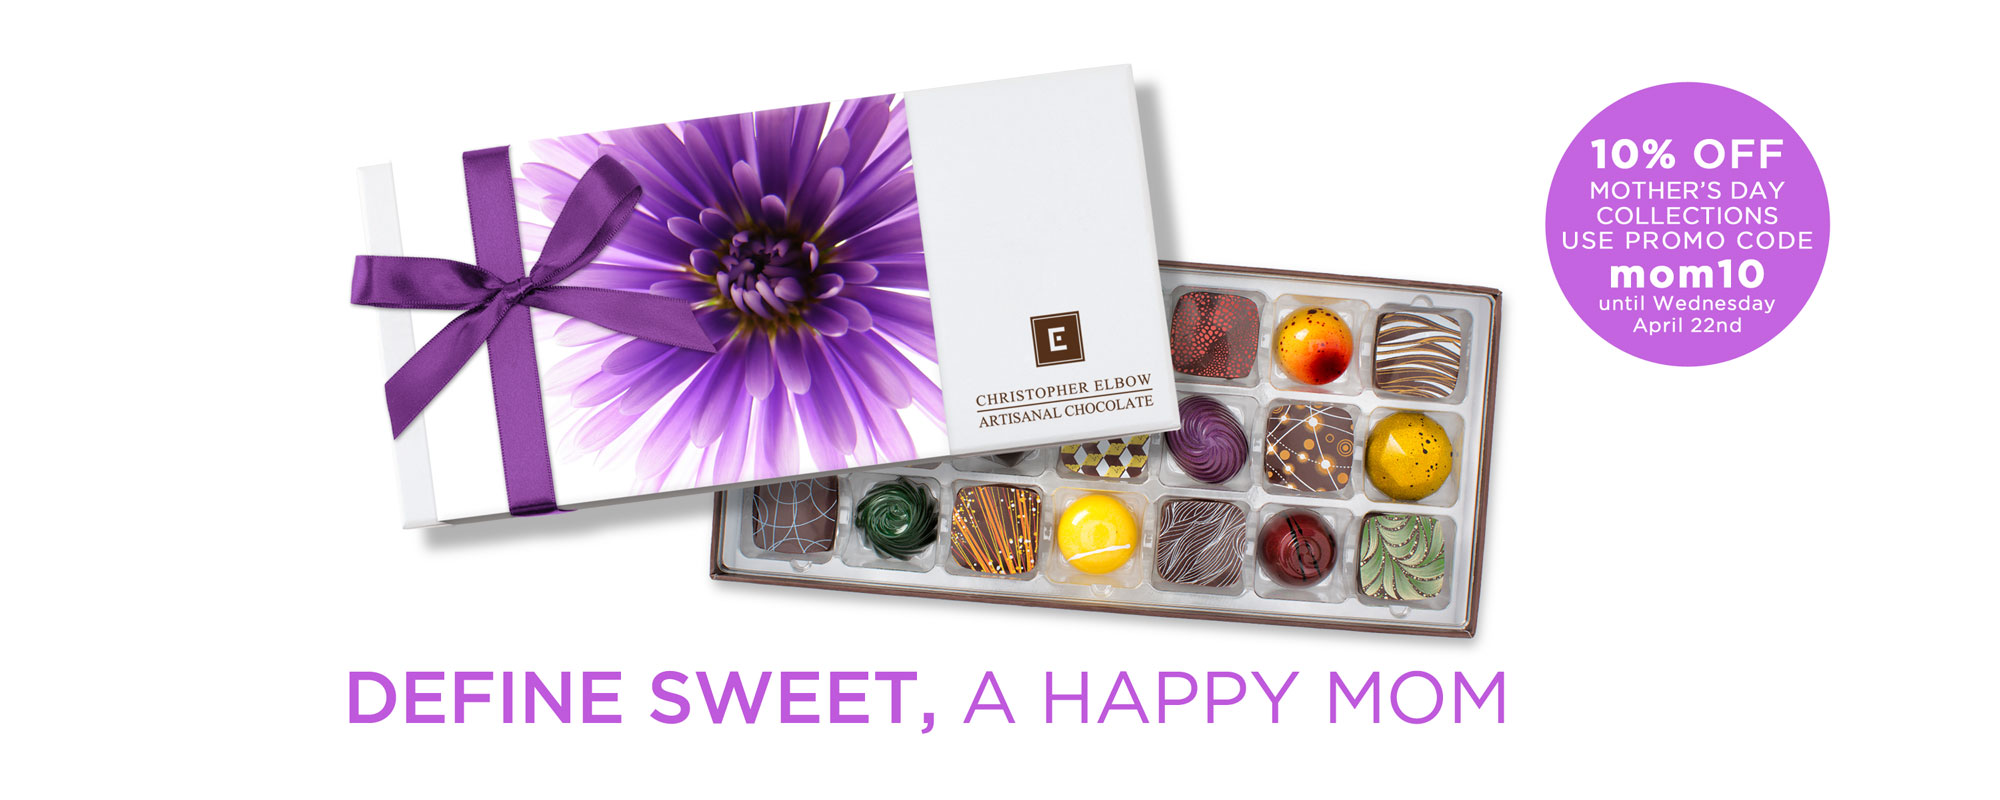 Mother's Day Collections